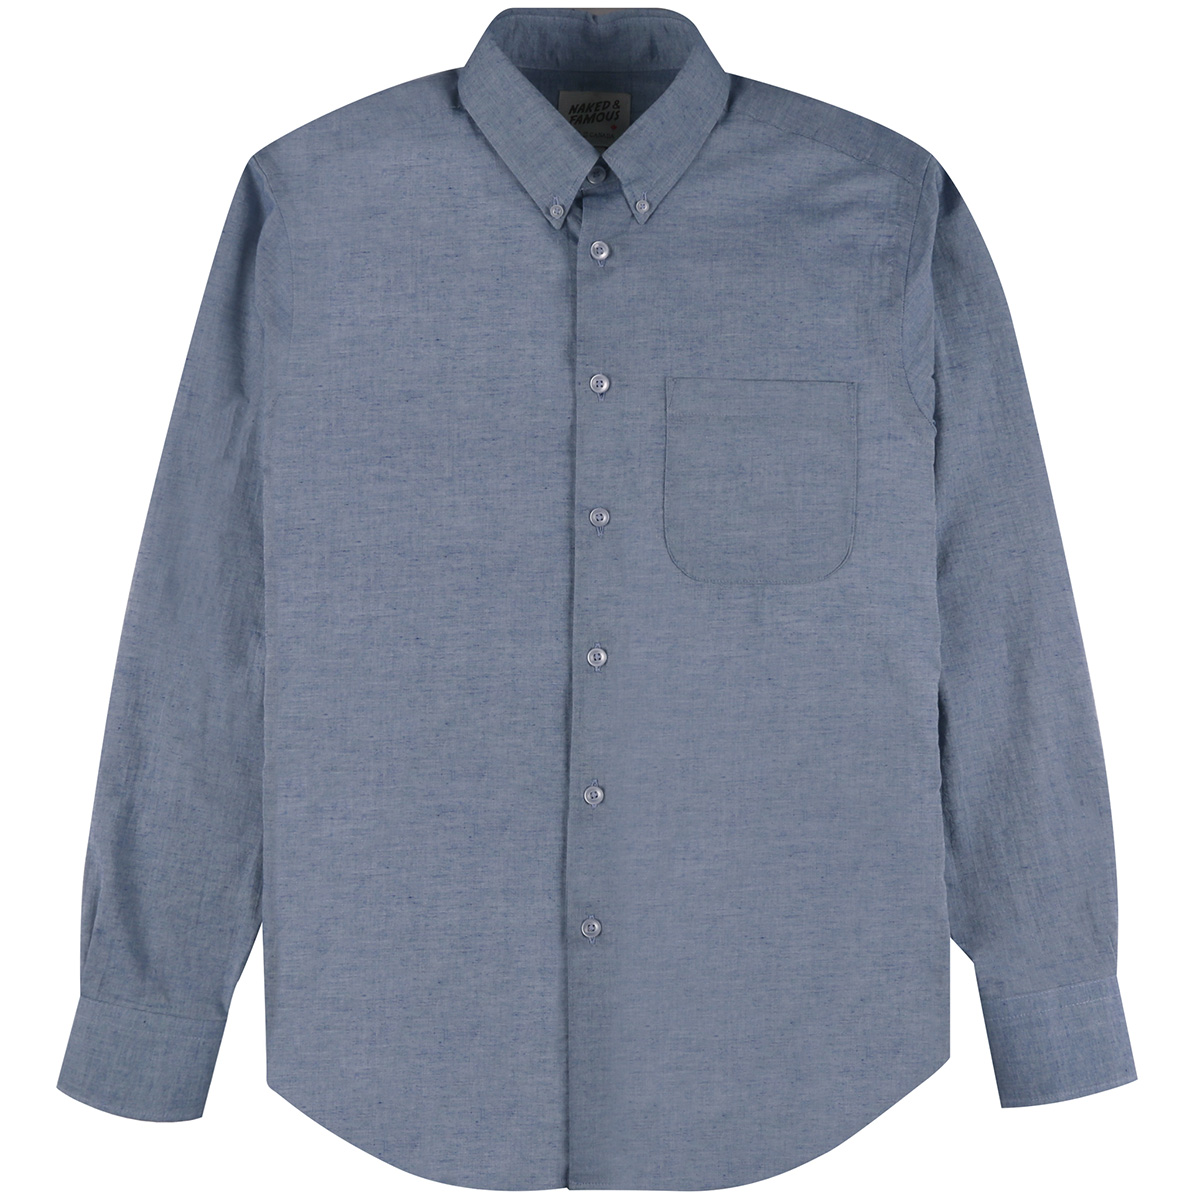 HEATHER GAUZE - BLUE - Easy Shirt